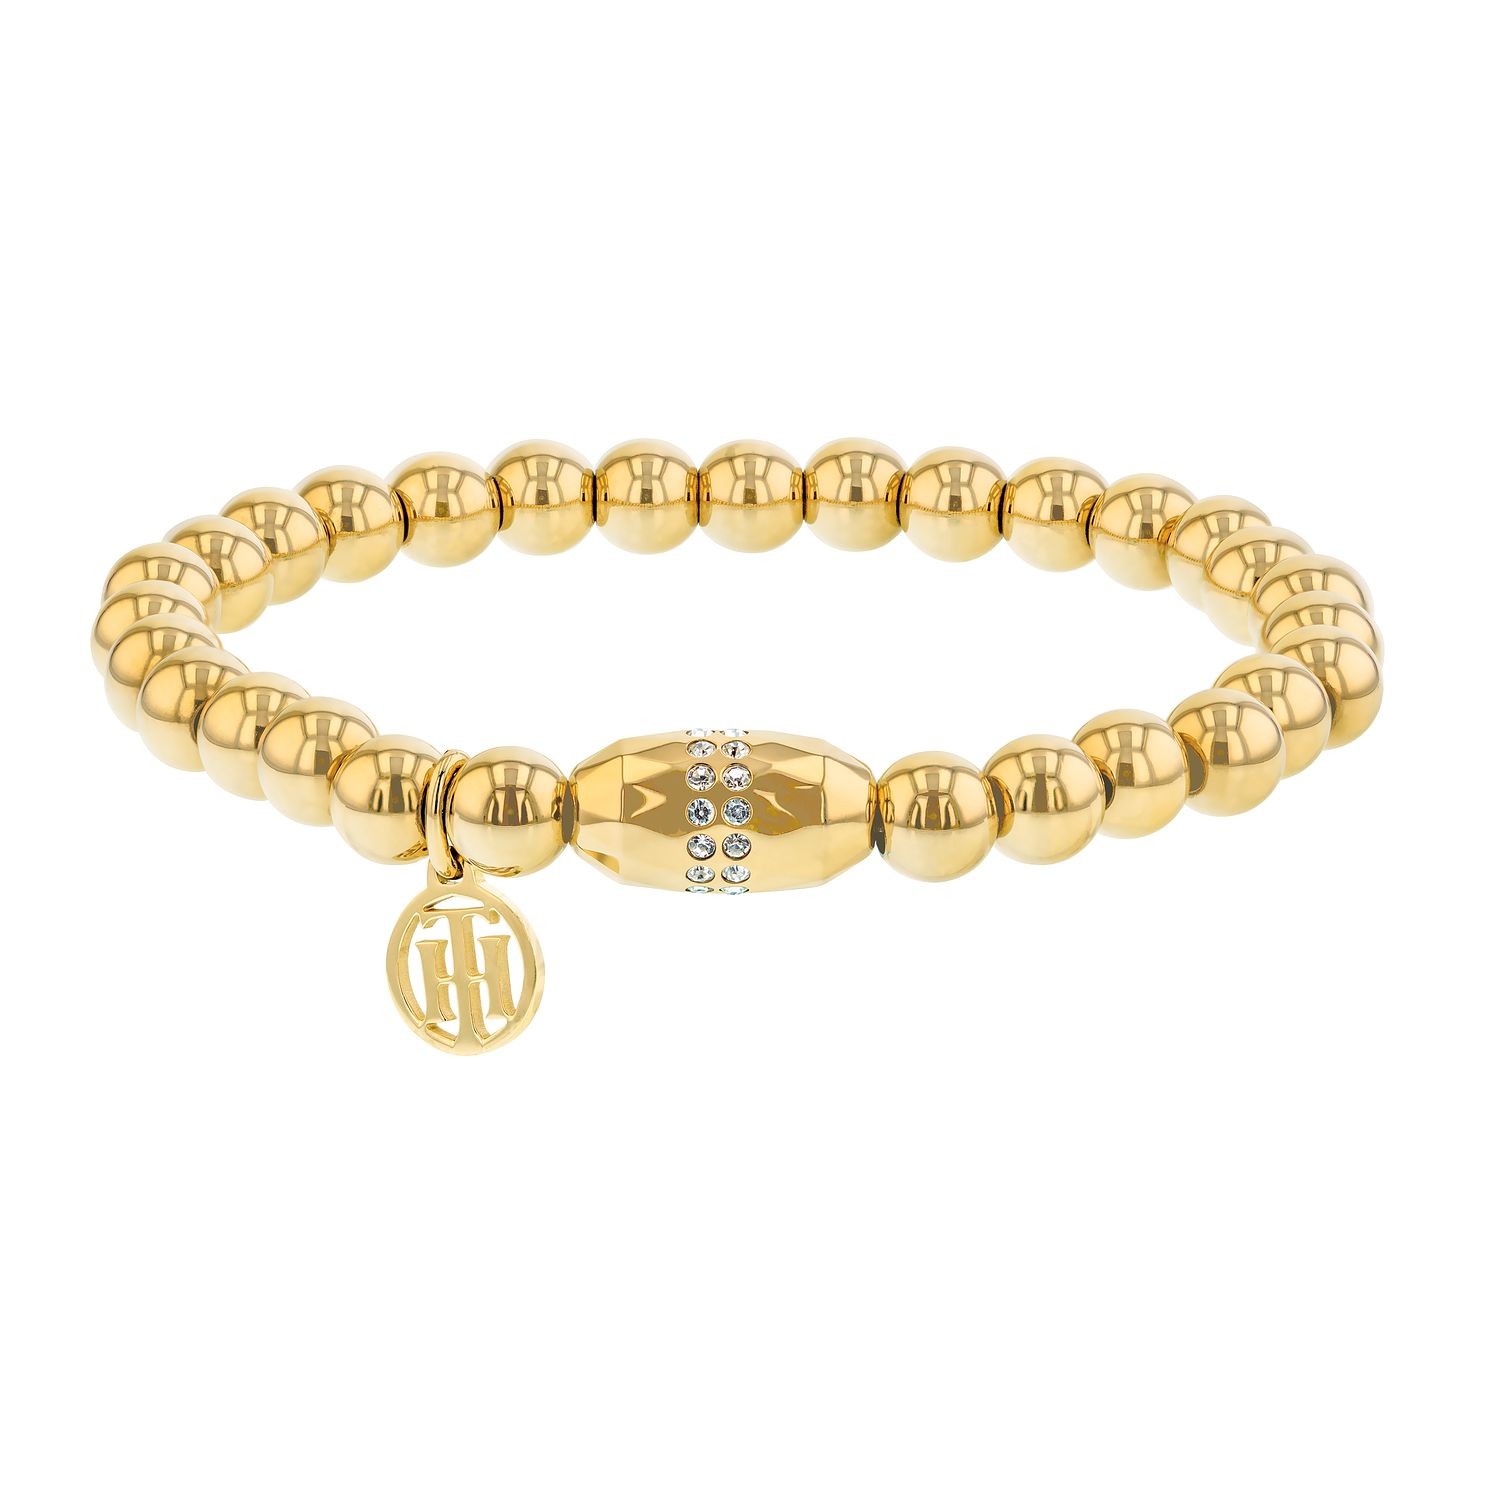 Tommy Hilfiger Ladies' Gold Plated Stretch Bead Bracelet - Product number 2330822